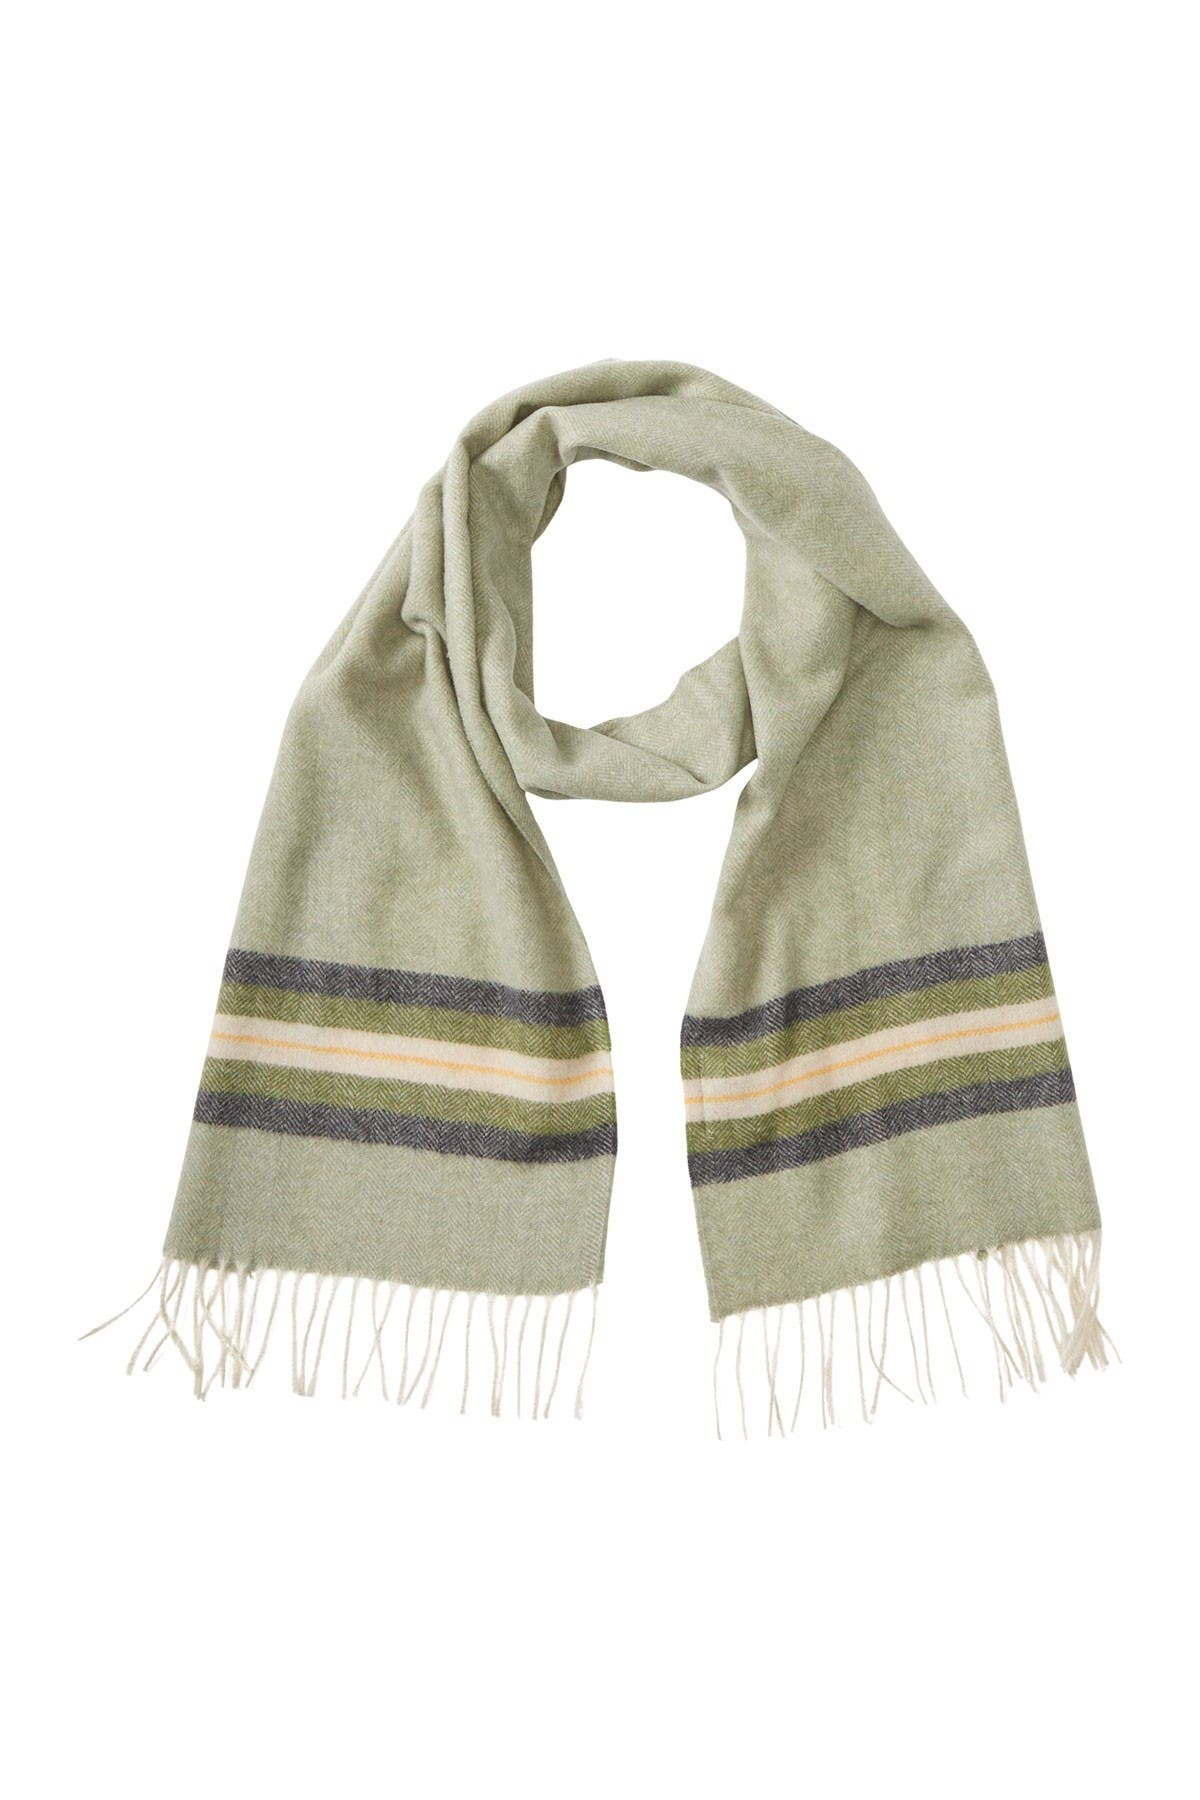 Image of Chelsey Imports Border Stripe Cashmere Scarf